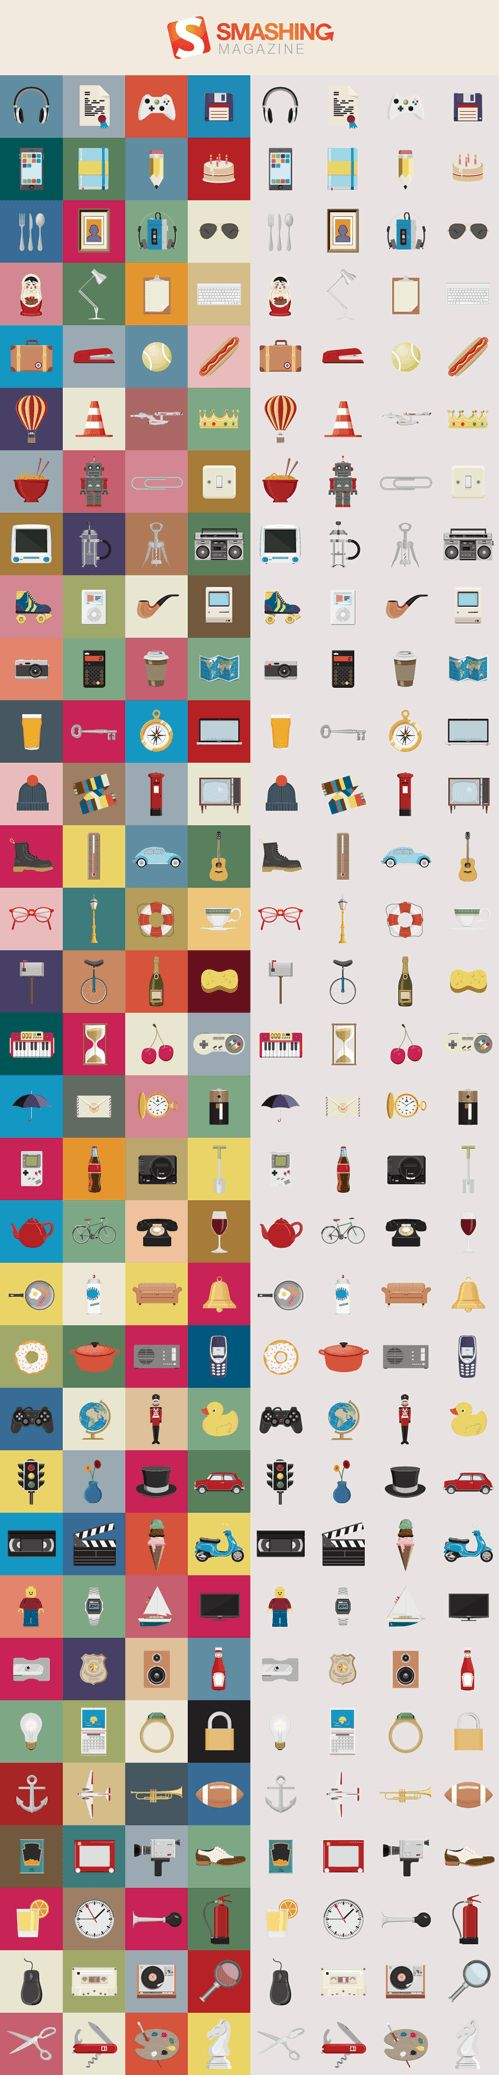 Freebie: Nice Things Icon Set (128 Icons, PNG + AI Source) >> http://www.smashingmagazine.com/2013/11/03/freebie-nice-things-icon-set-png-ai-source/